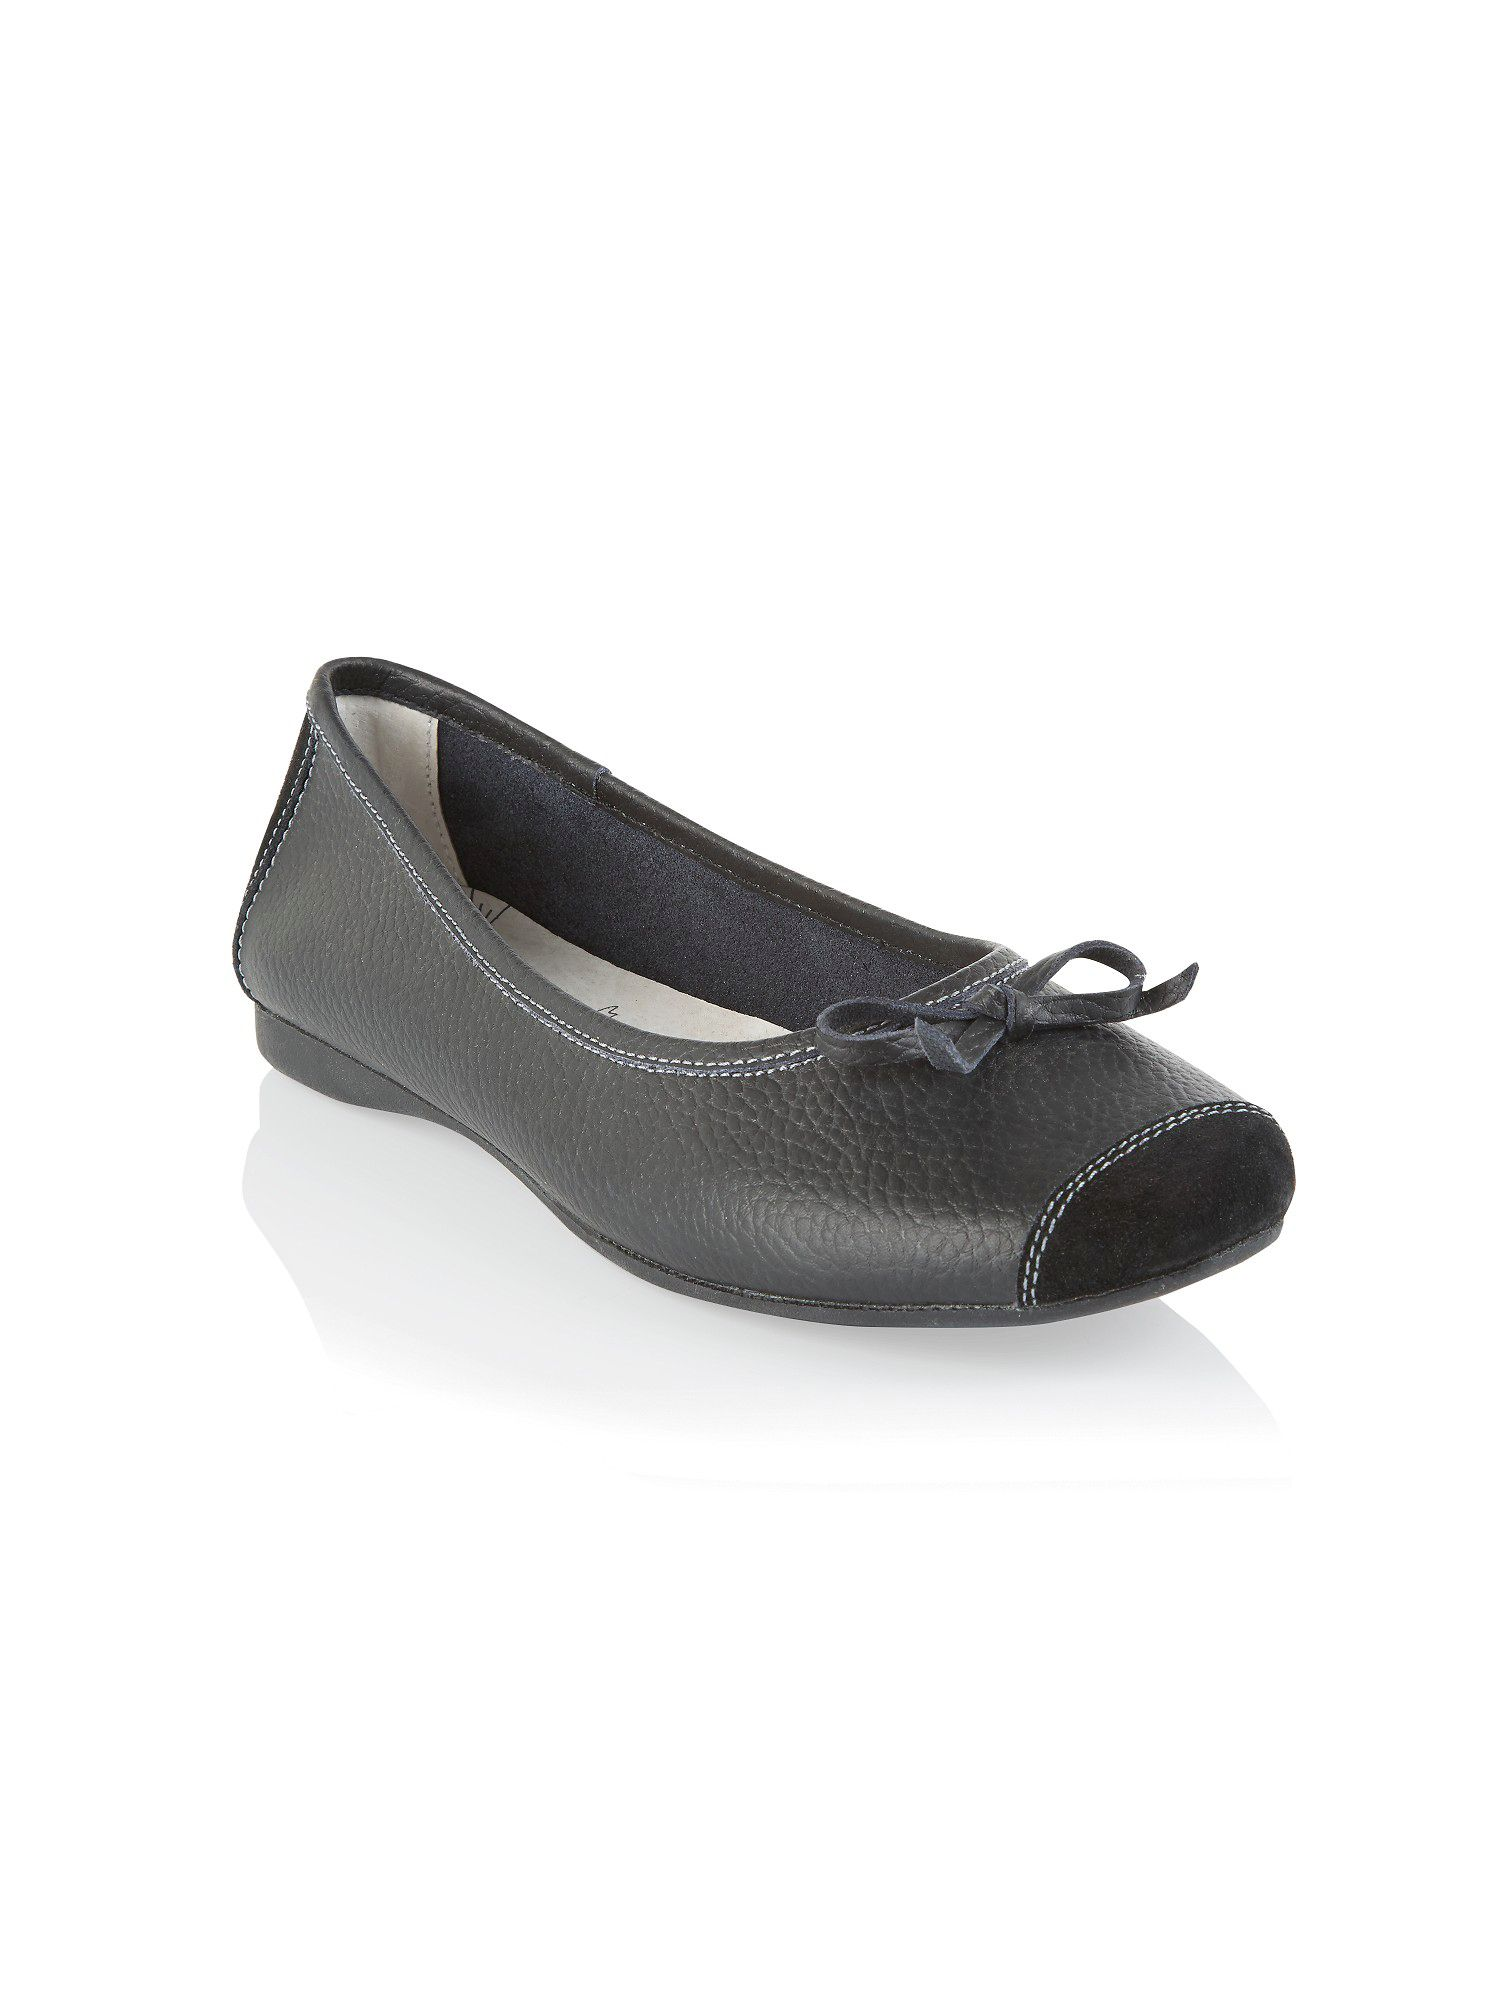 Black ballet pumps